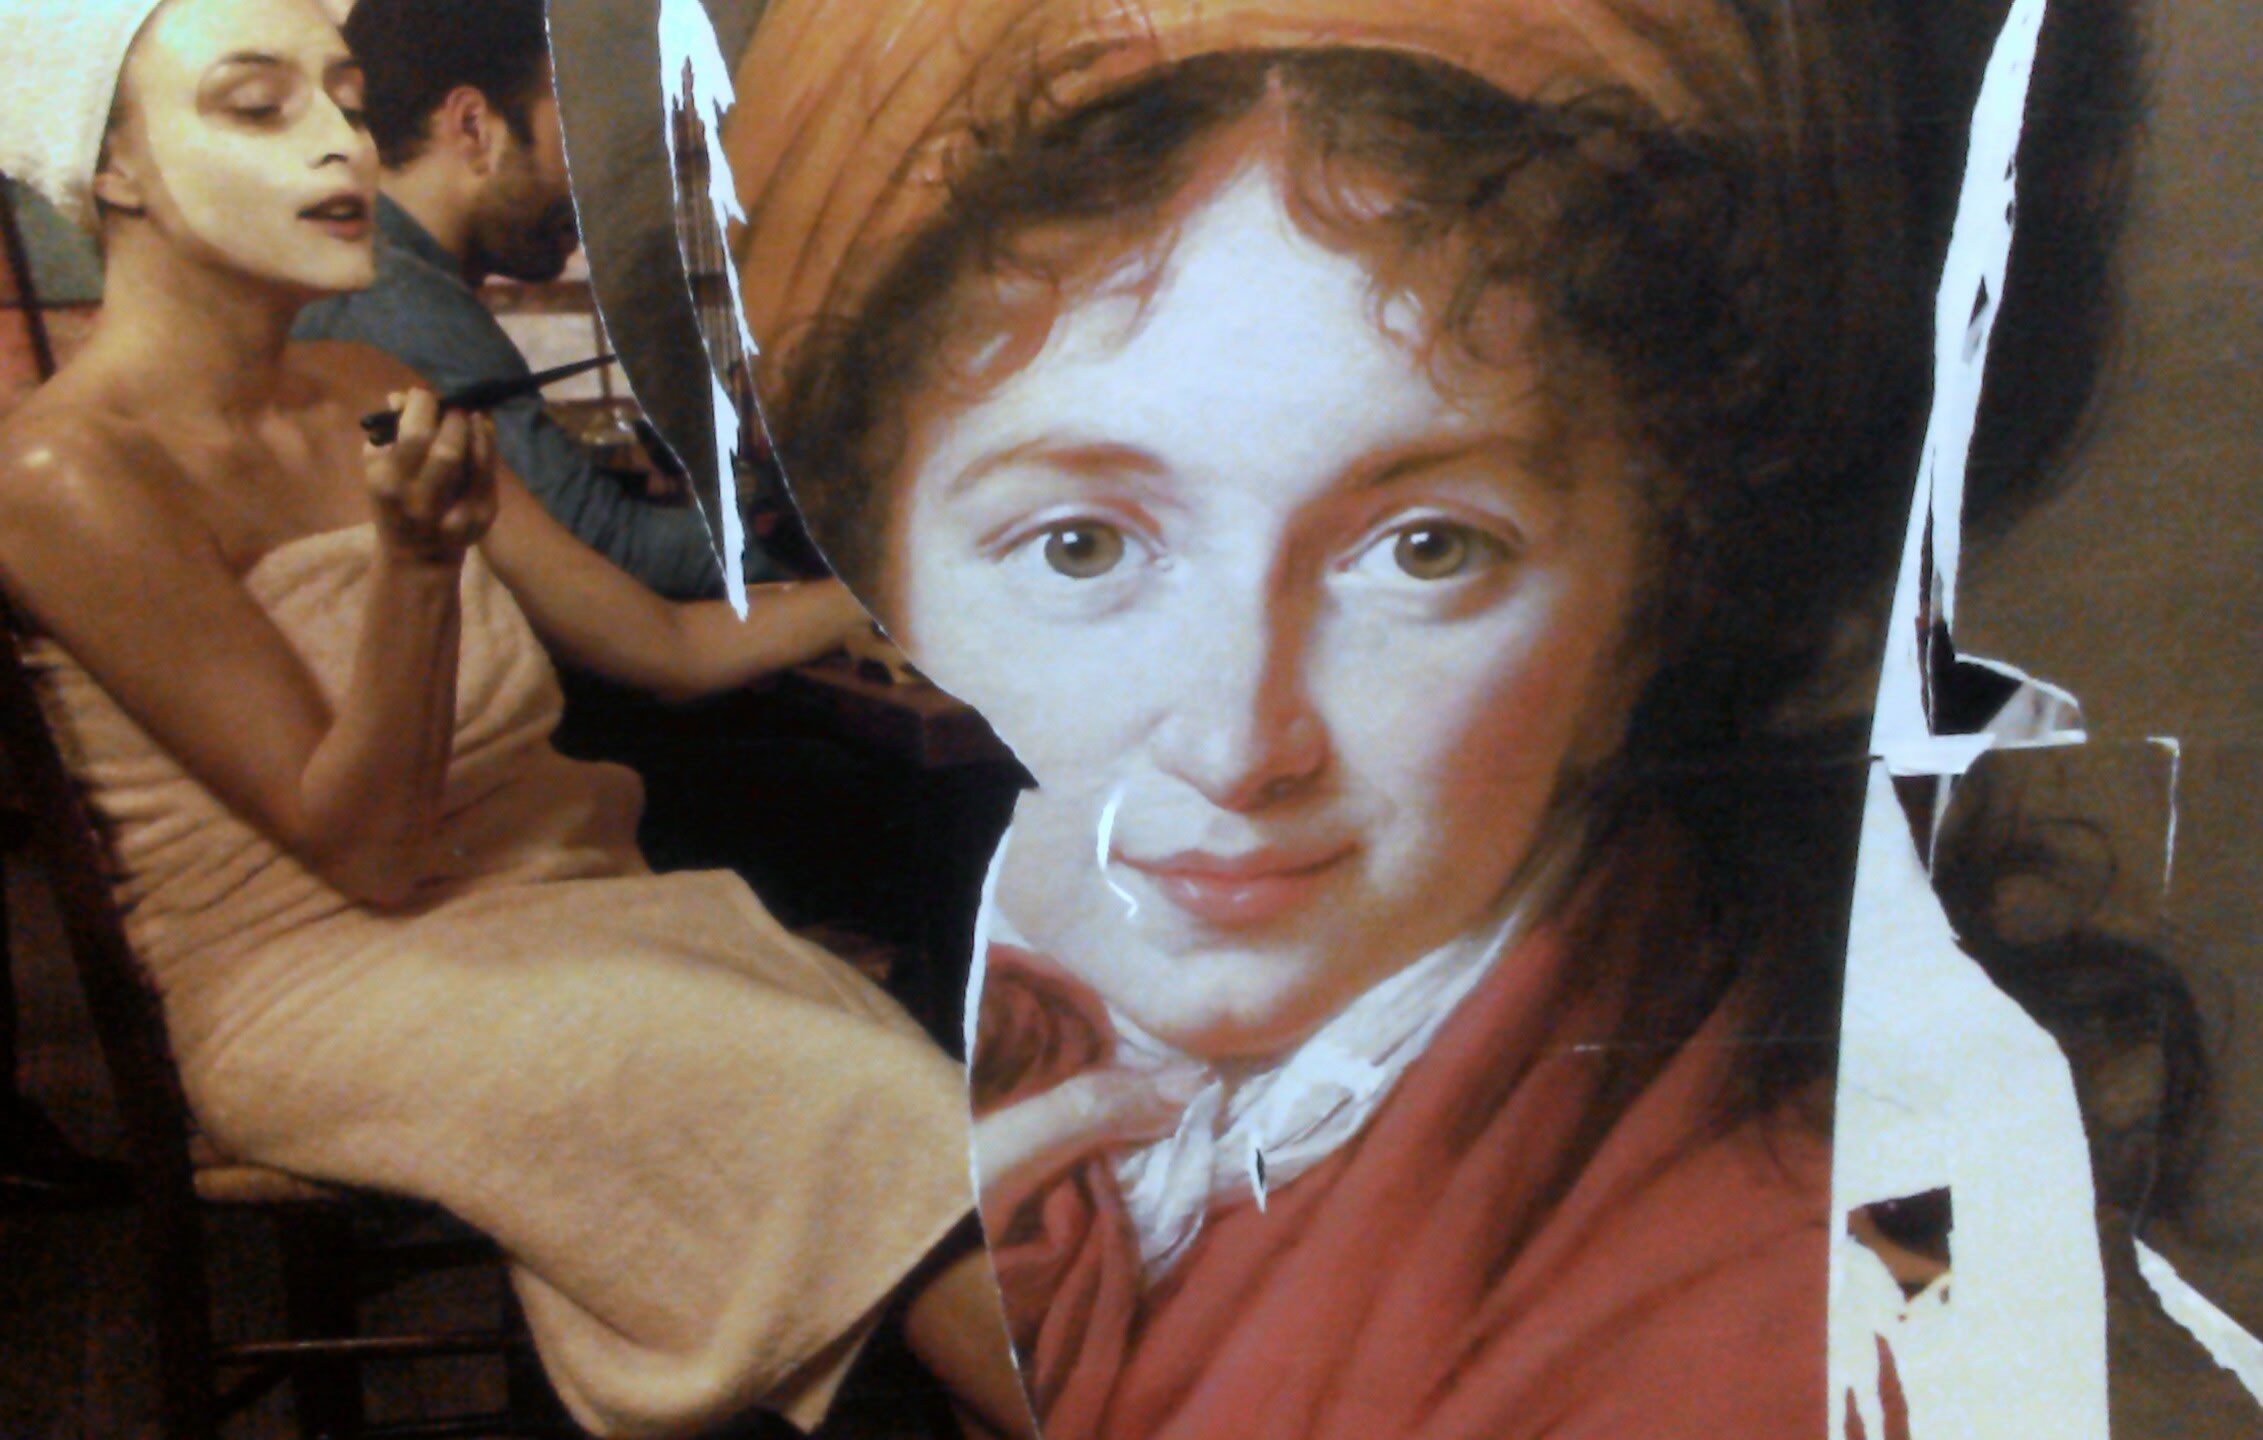 Two ads in a Paris metro. The work of Marie Antoinette's portraitiste, Louise Elisabeth Vigee Le Brun, with an ad for having dinner delivered to the intimate comforts of your home.